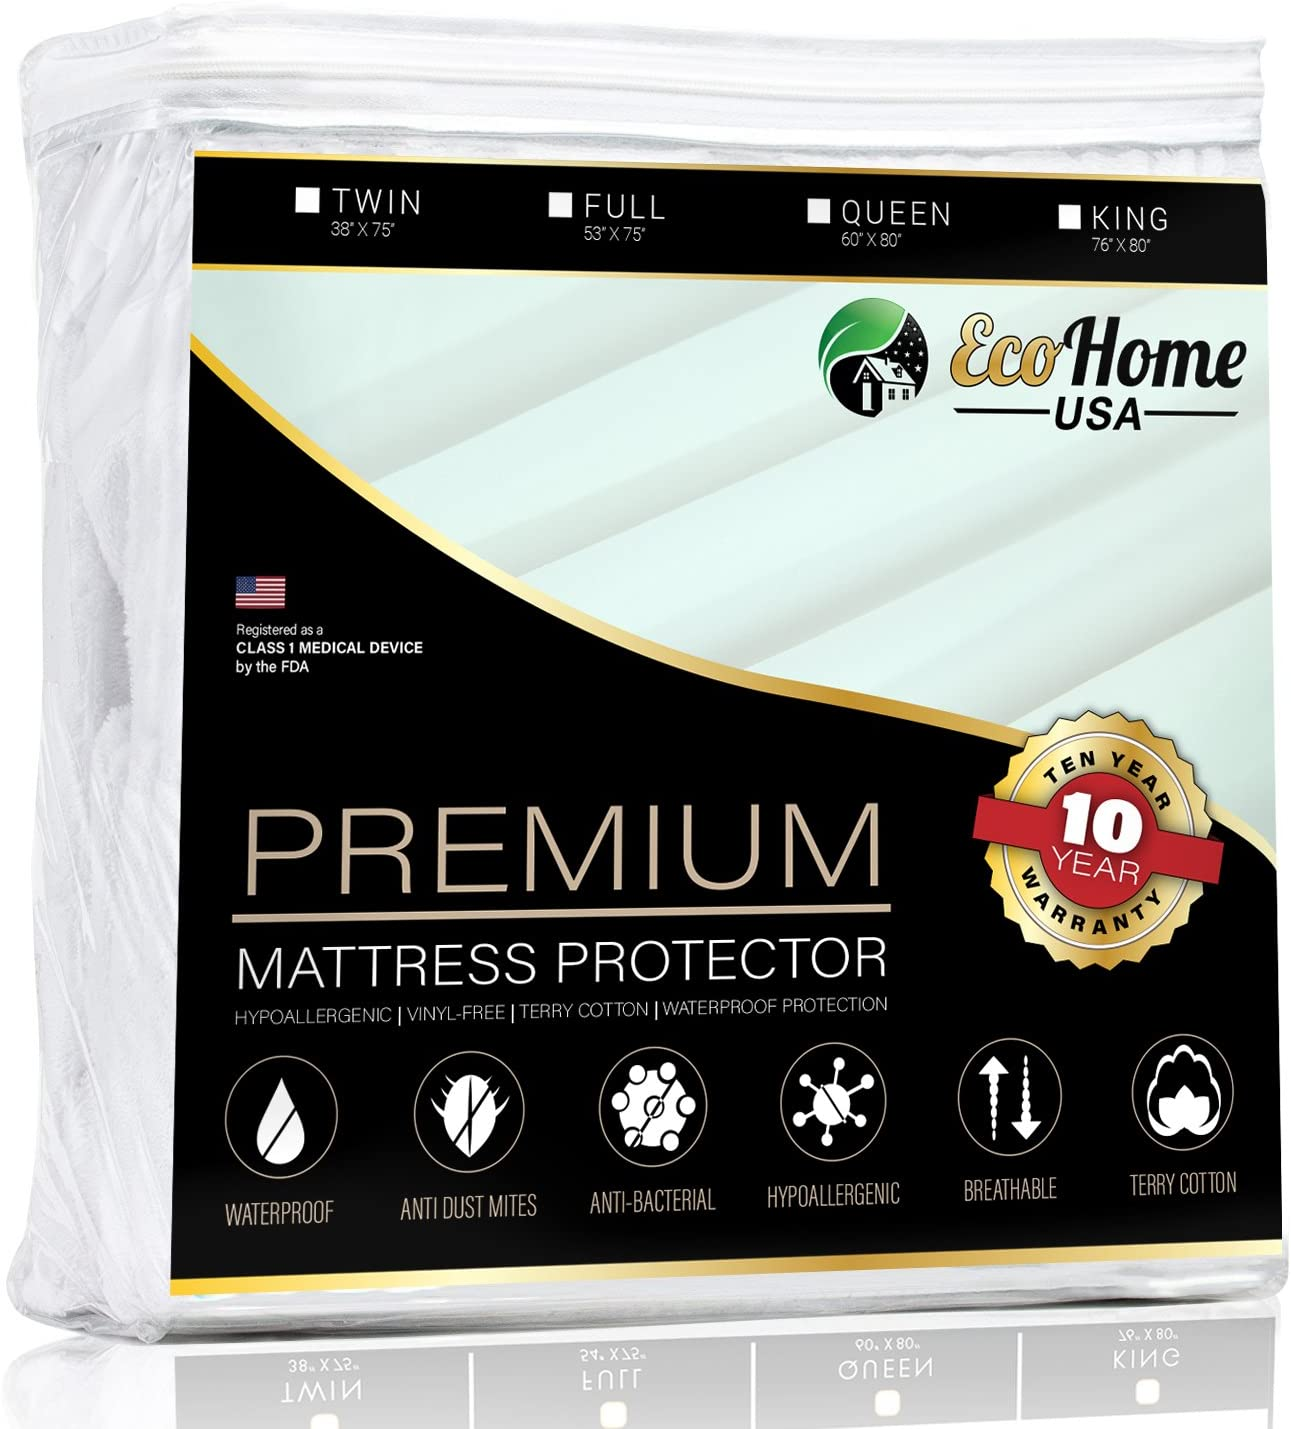 Premium Mattress Pad Protector - Waterproof & Hypoallergenic Cover - Vinyl Free, Terry Cotton Topper (King)